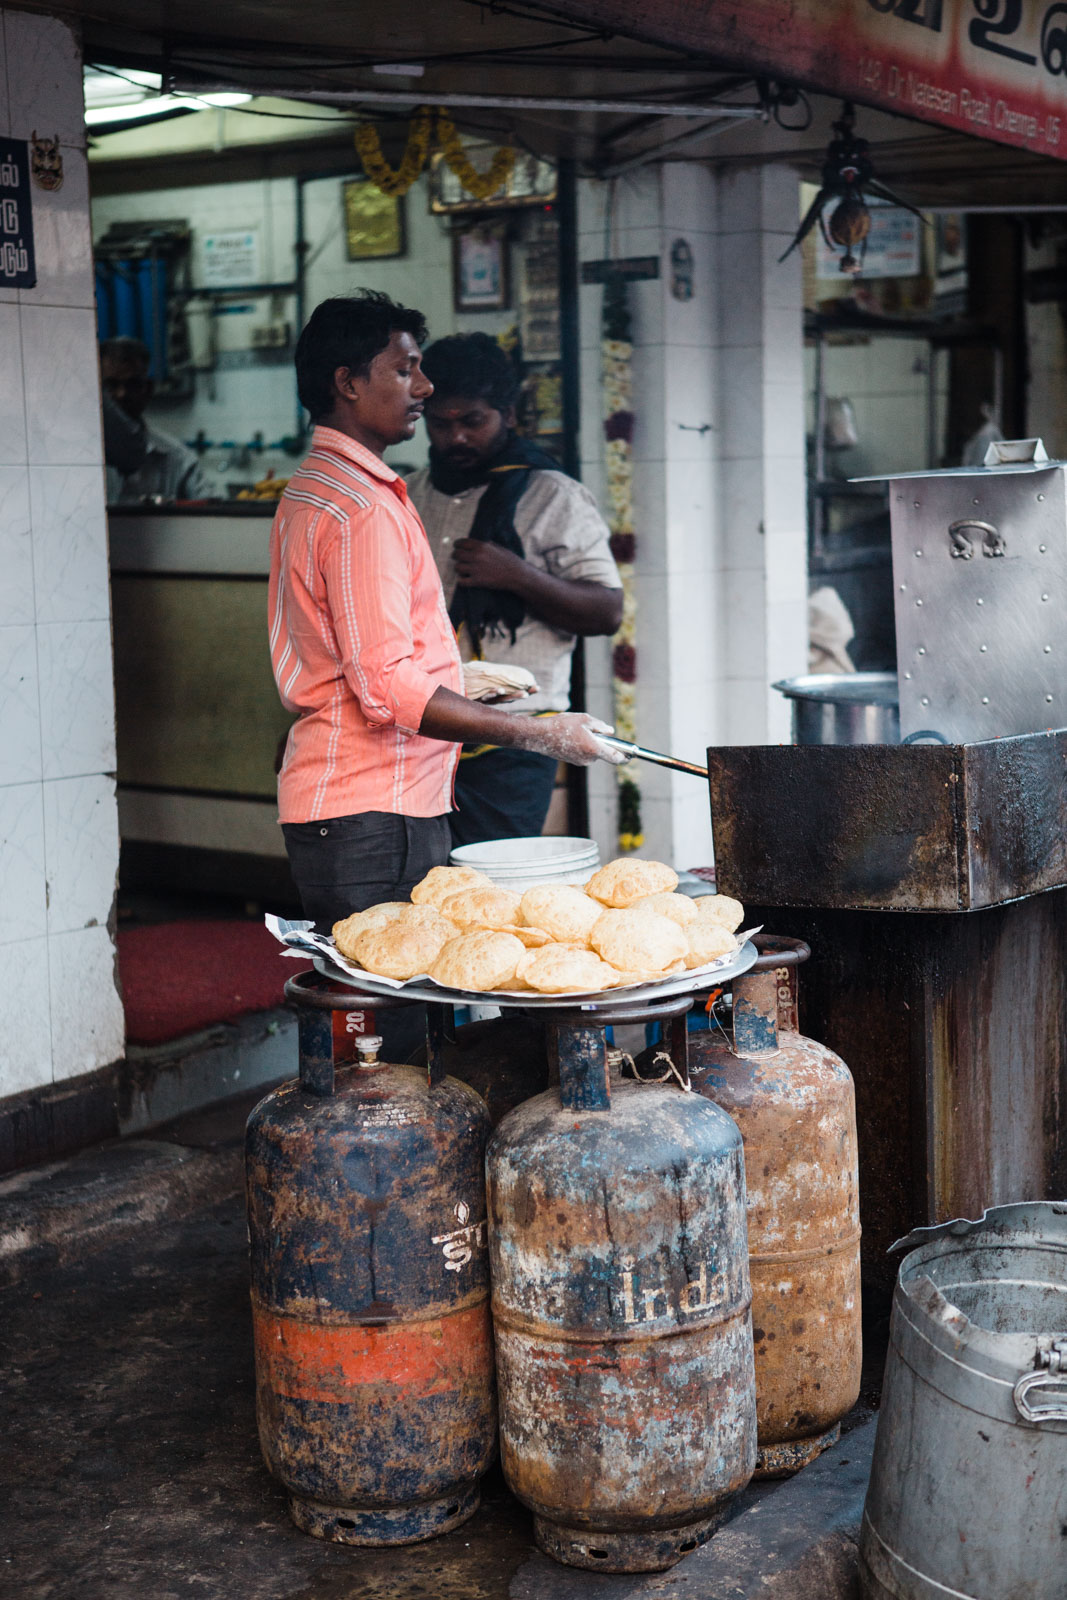 Man cooking in Channai India, travel photo